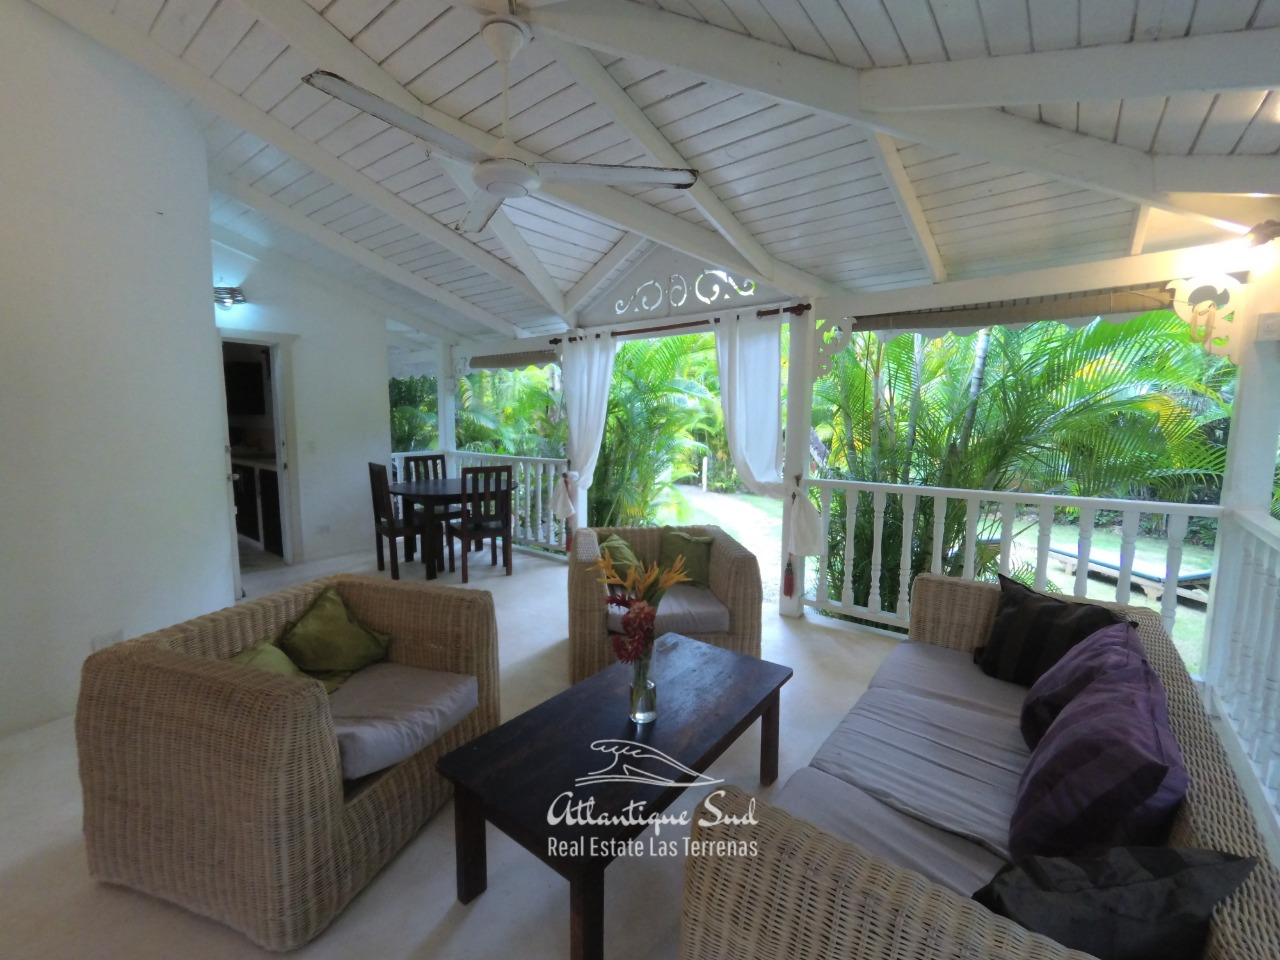 Villa for sale steps from the beach in las terrenas 8.jpeg